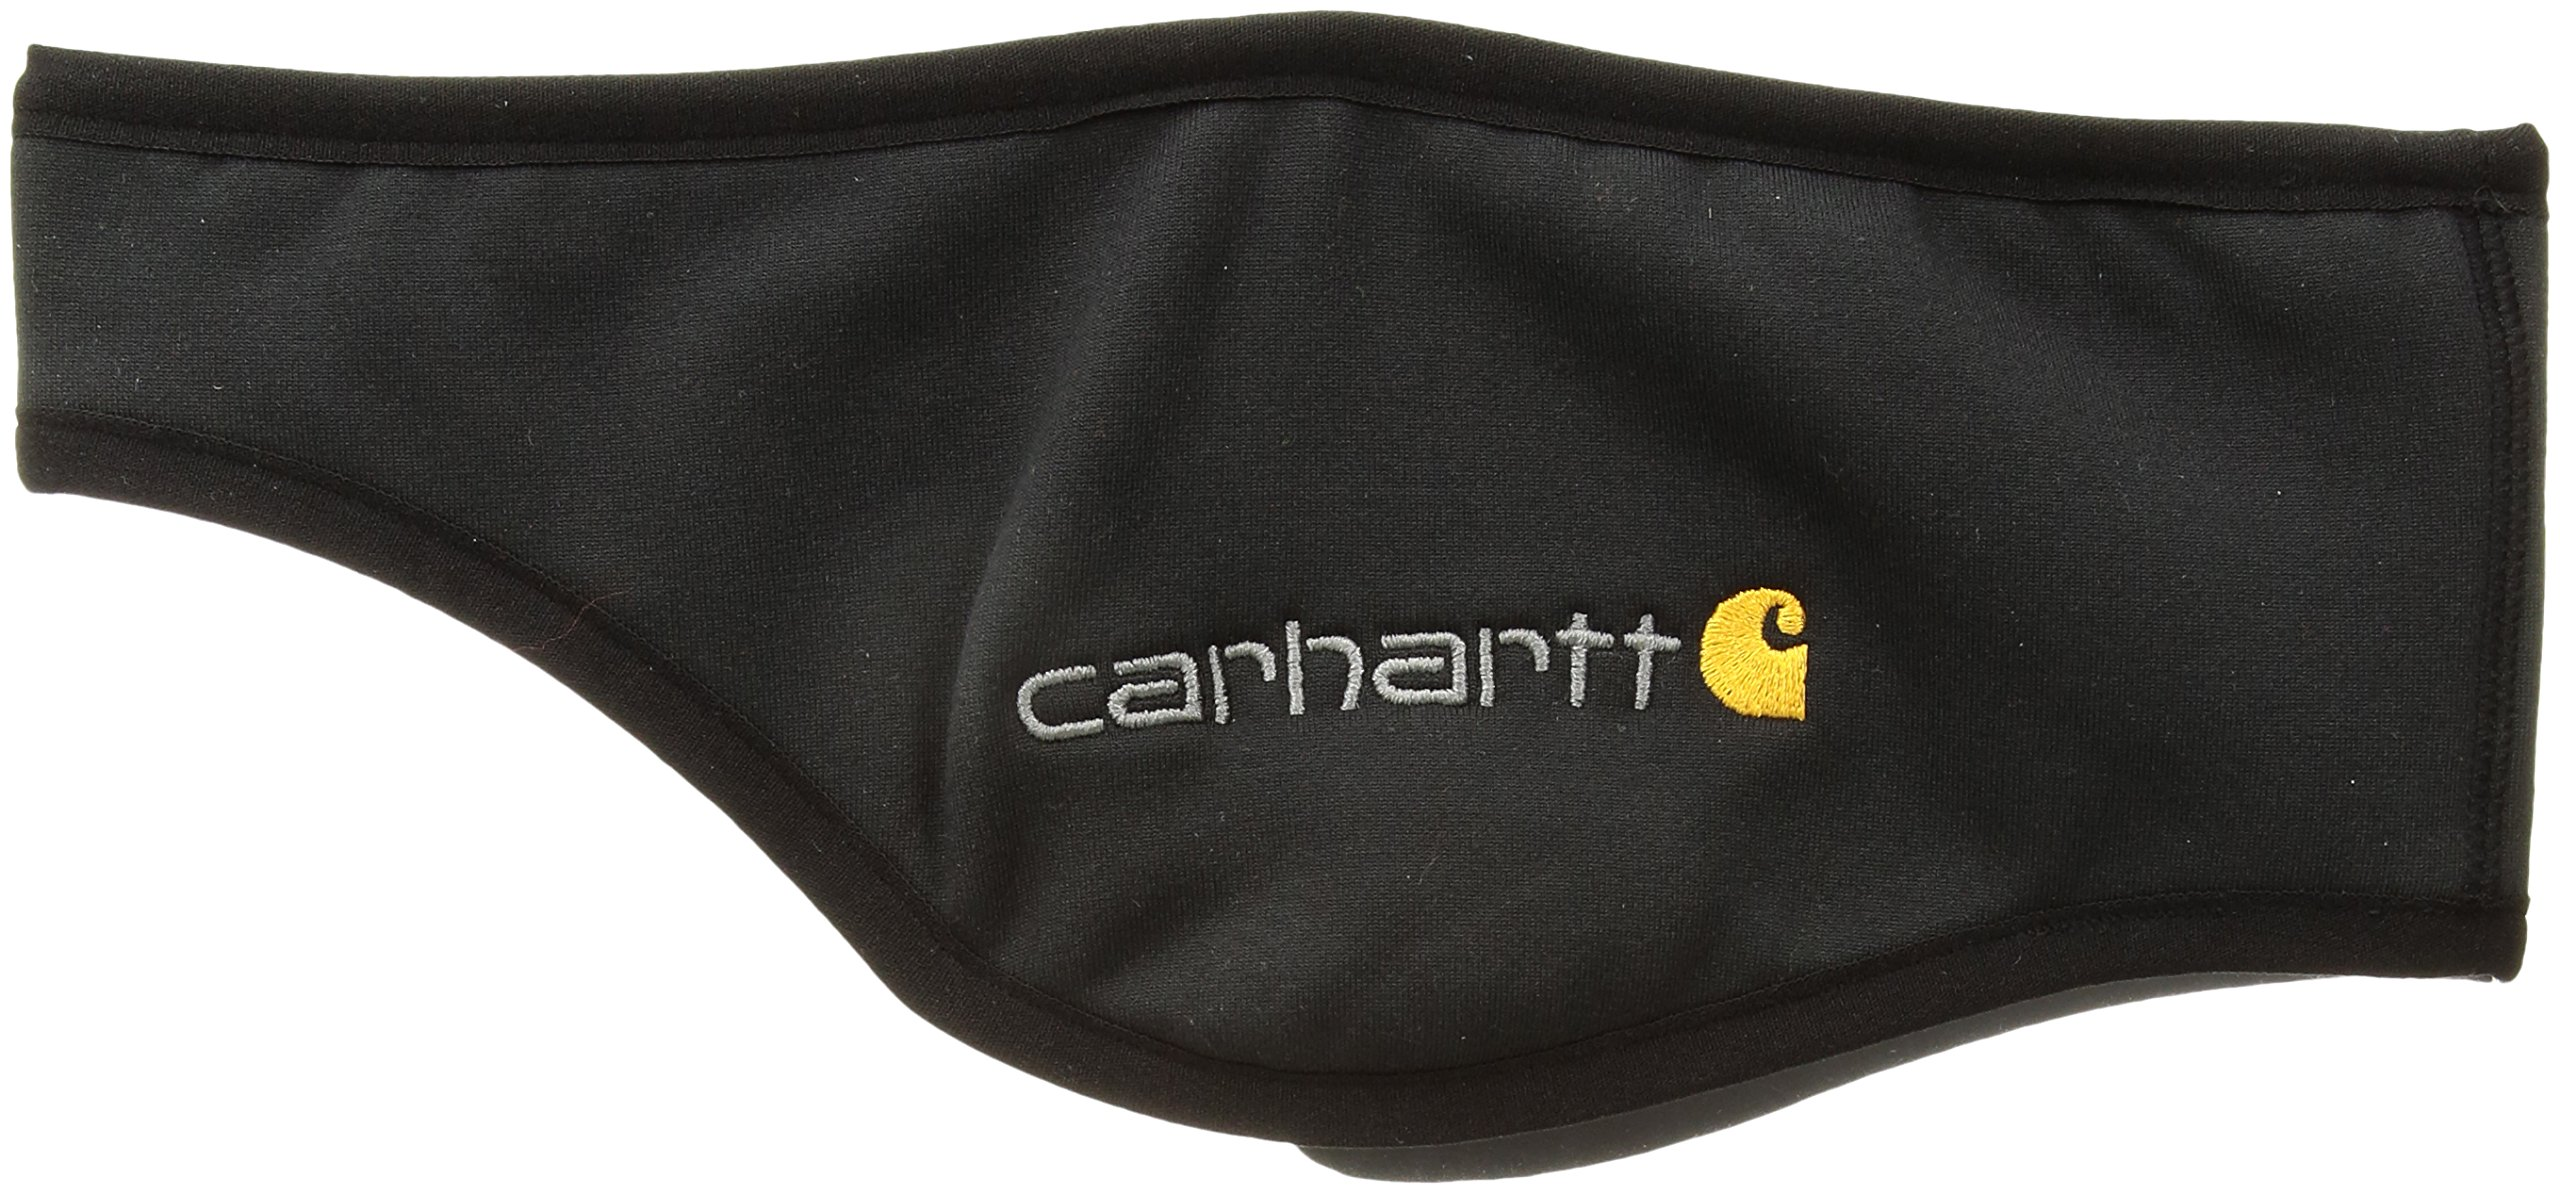 Carhartt Men's Force Fleece Ball Cap Headband, black, One Size